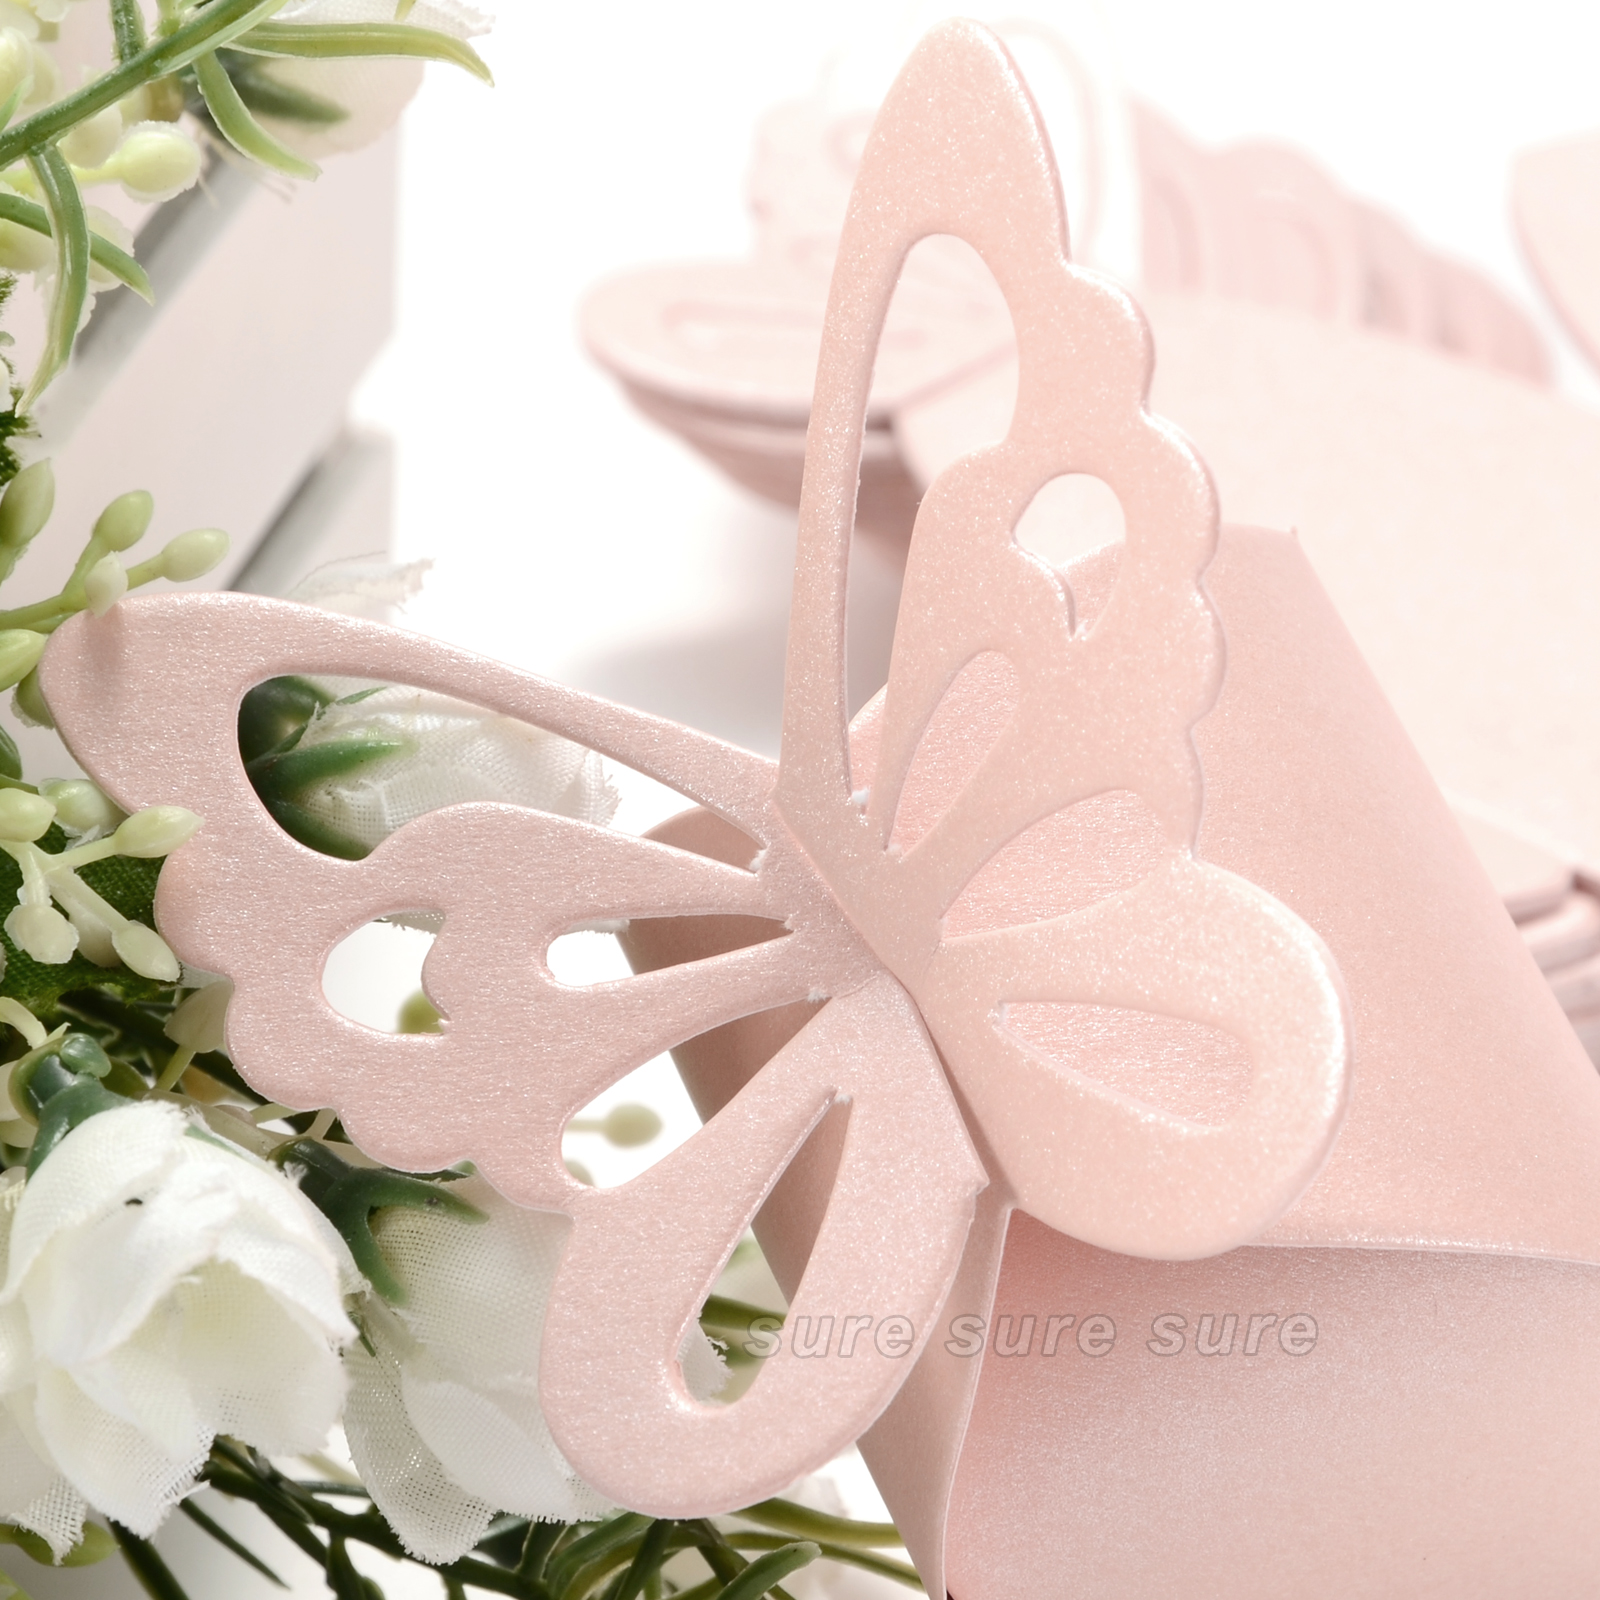 50 Pcs Butterfly Party Wedding Favor Gift Candy Bomboniere Boxes